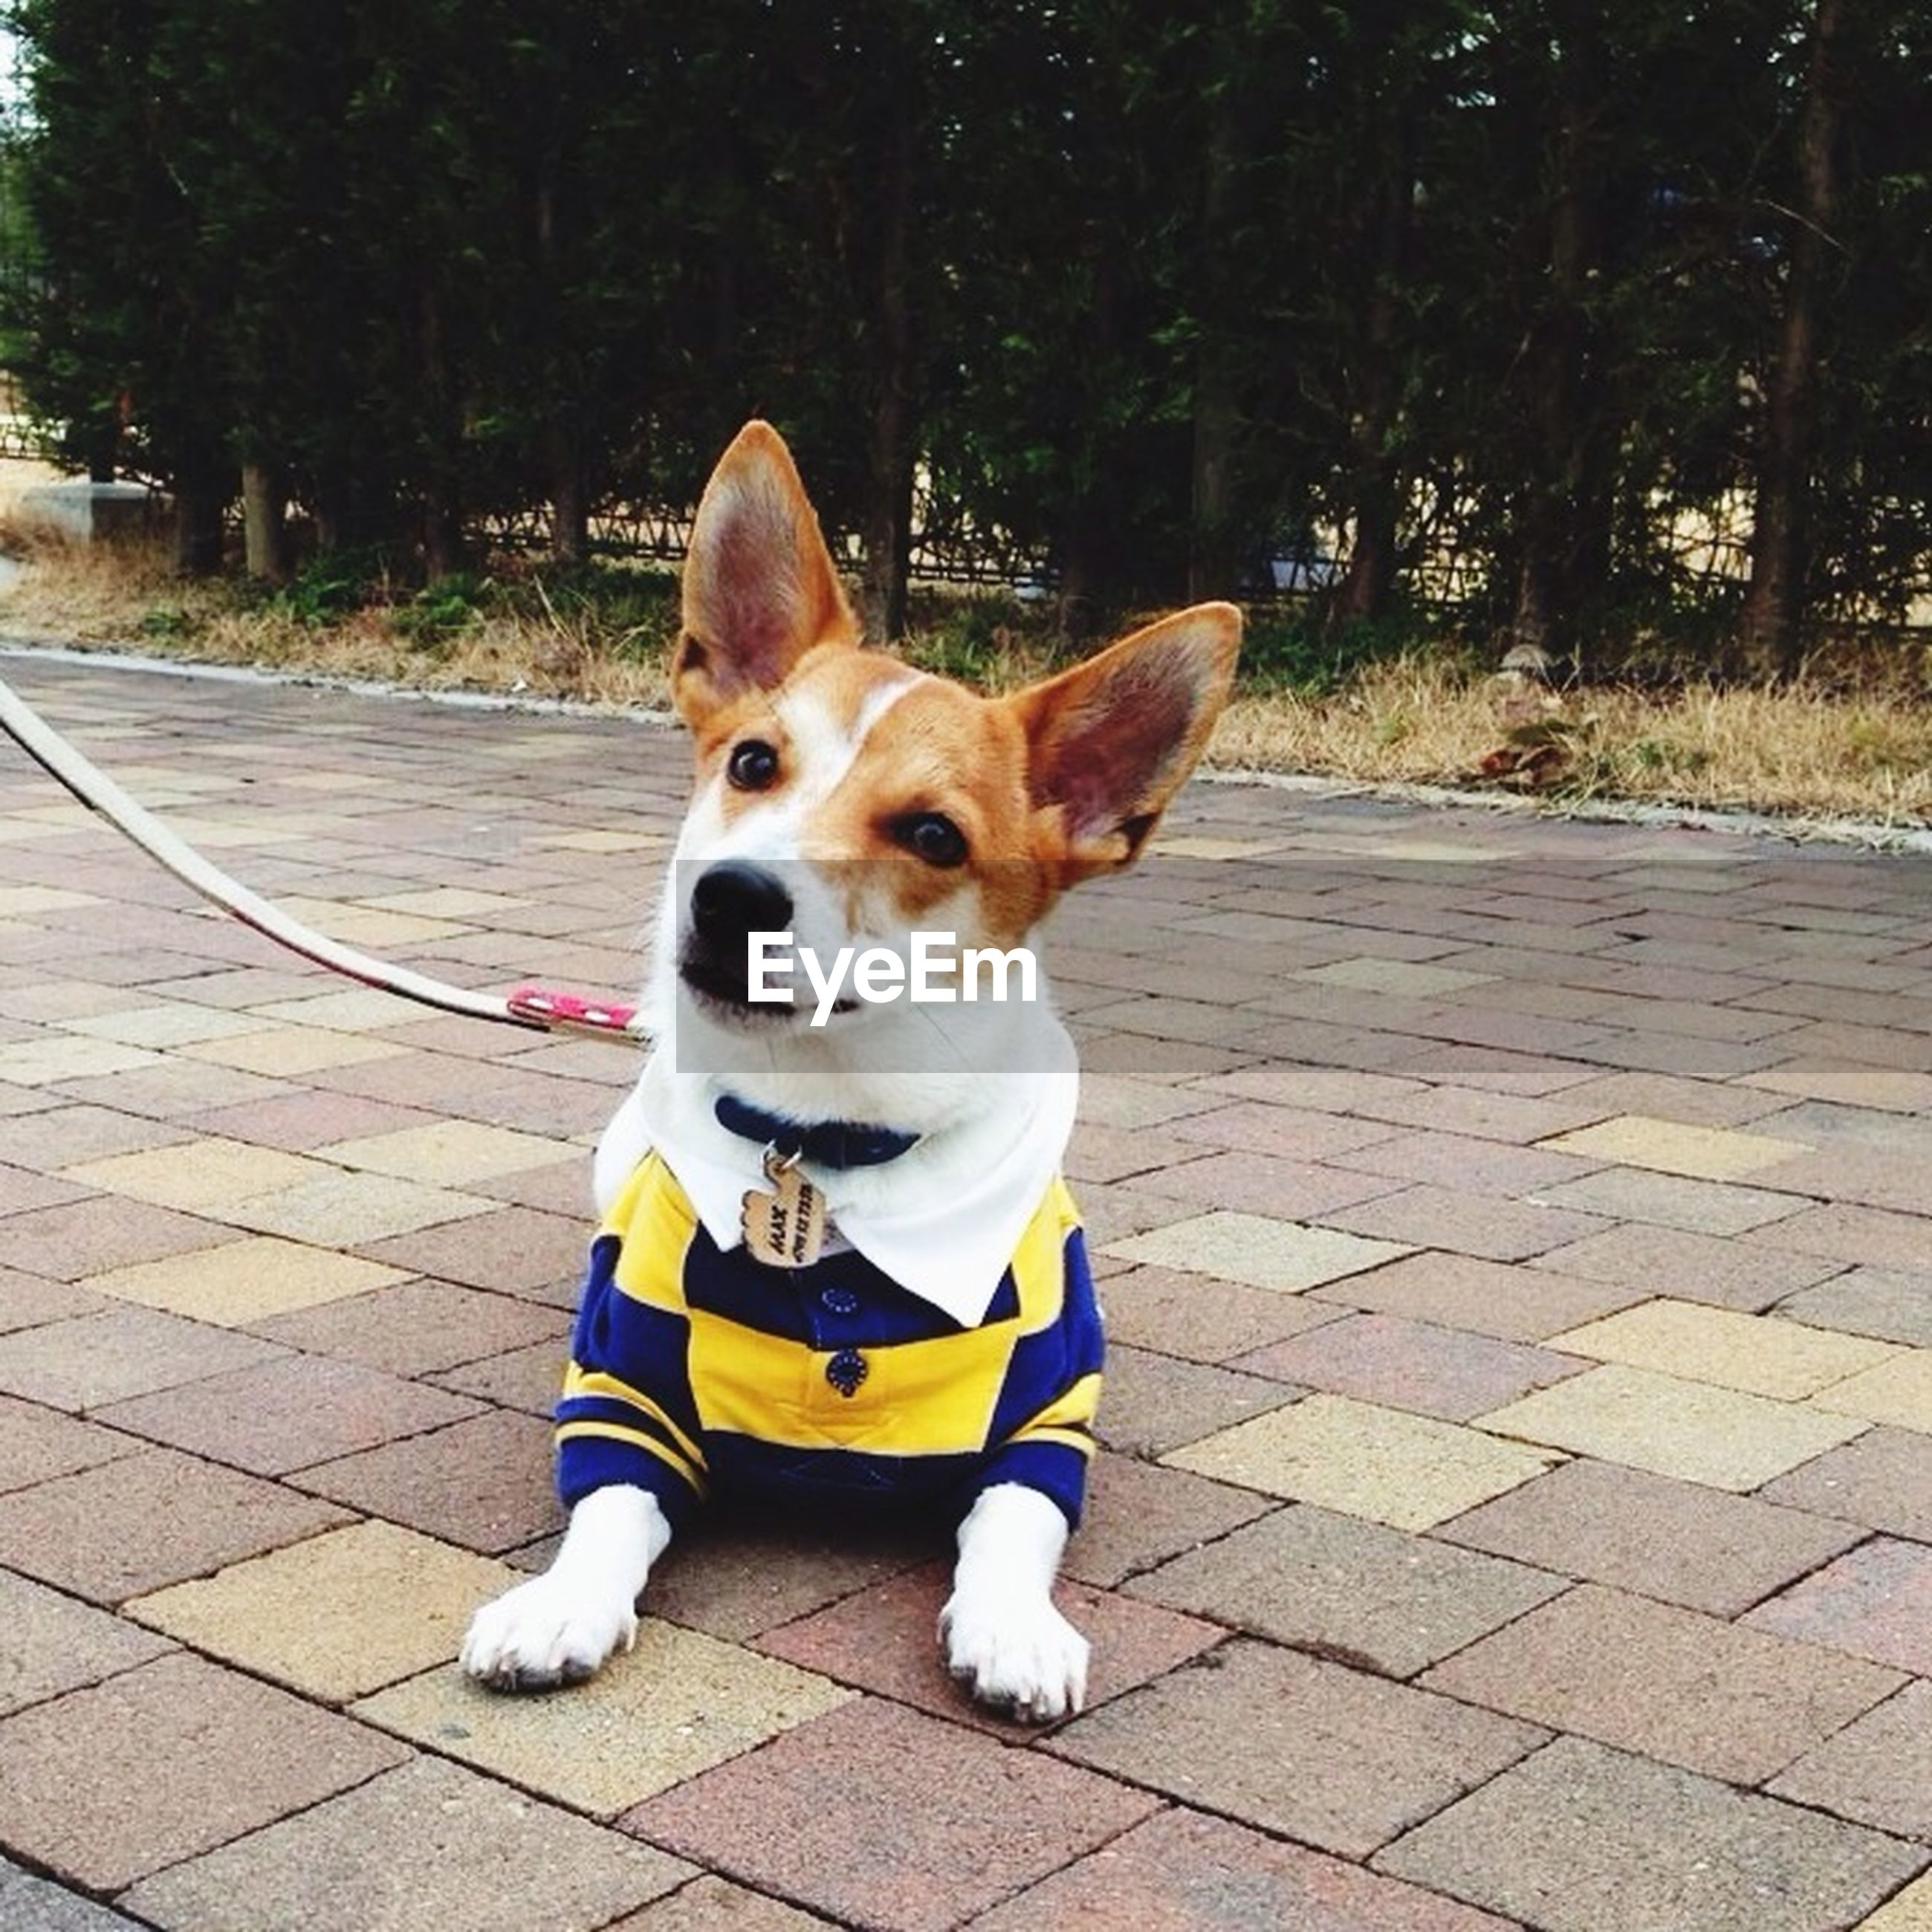 pets, dog, domestic animals, one animal, animal themes, mammal, portrait, looking at camera, full length, street, pet leash, sitting, pet collar, standing, sidewalk, front view, footpath, white color, outdoors, day